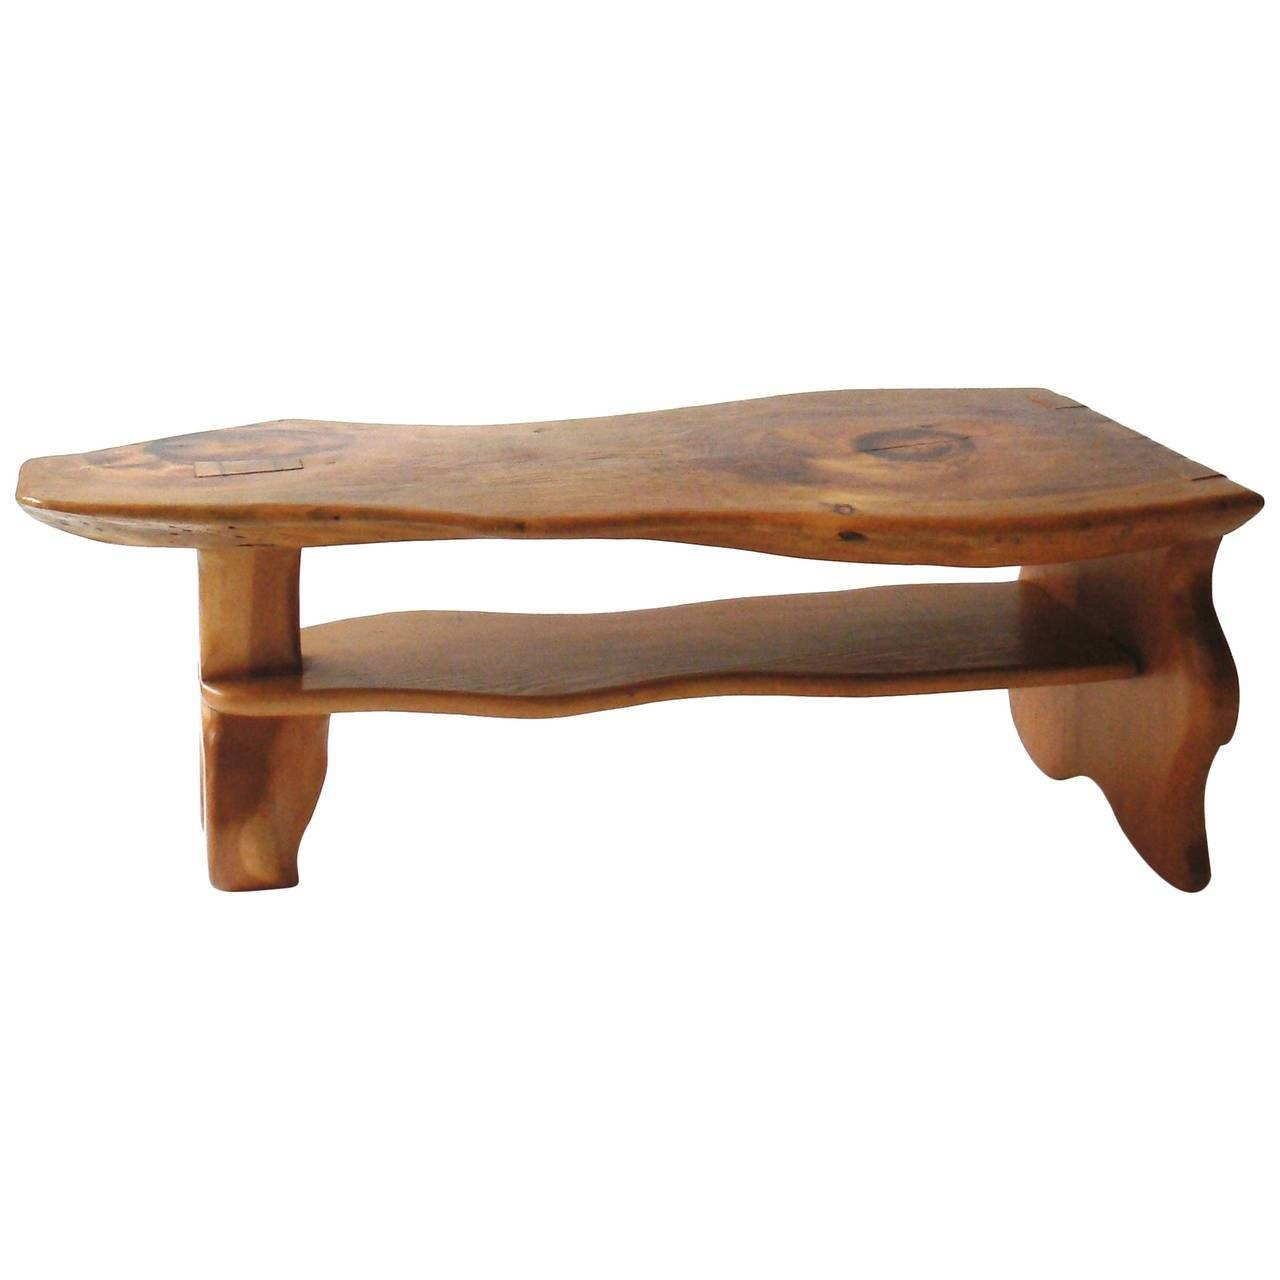 Carved Live Edge Coffee Table, Manner Of Alexandre Noll For Sale in Live Edge Coffee Tables (Image 4 of 15)